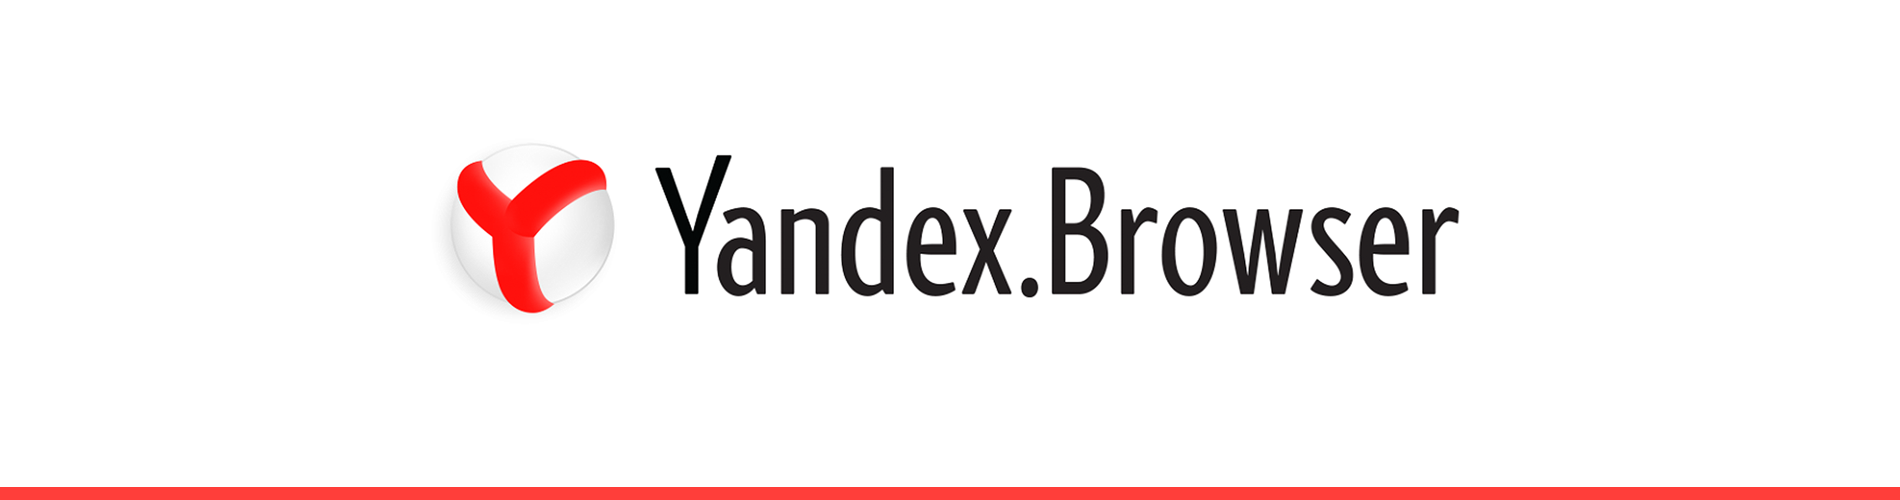 What to do if you end up on the Yandex Blacklist - Oxidian GmbH